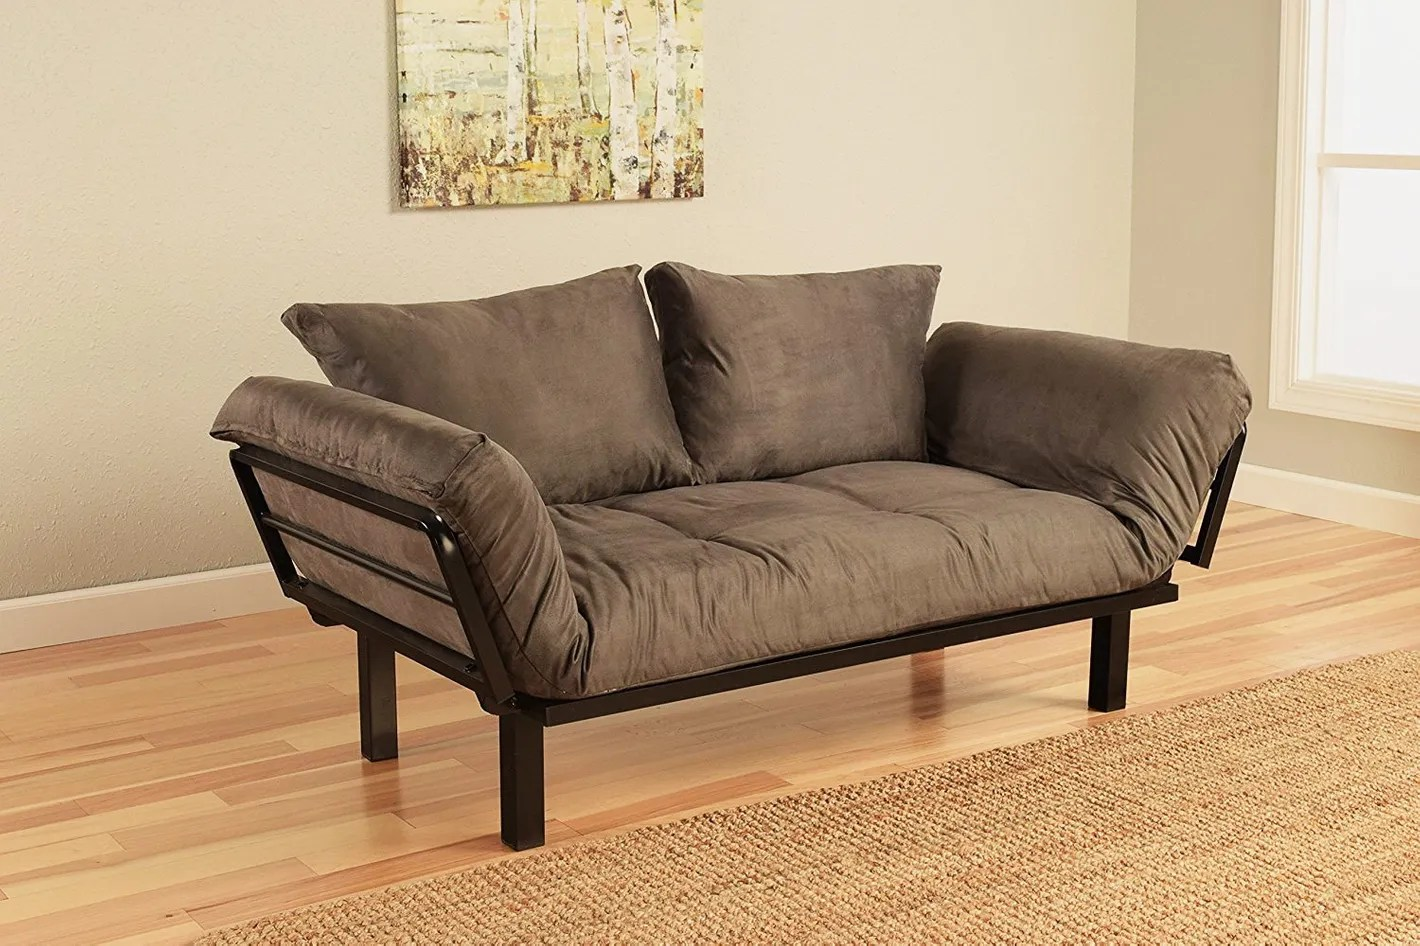 Best Places To Buy A Futon Kodiak Best Futon Lounger